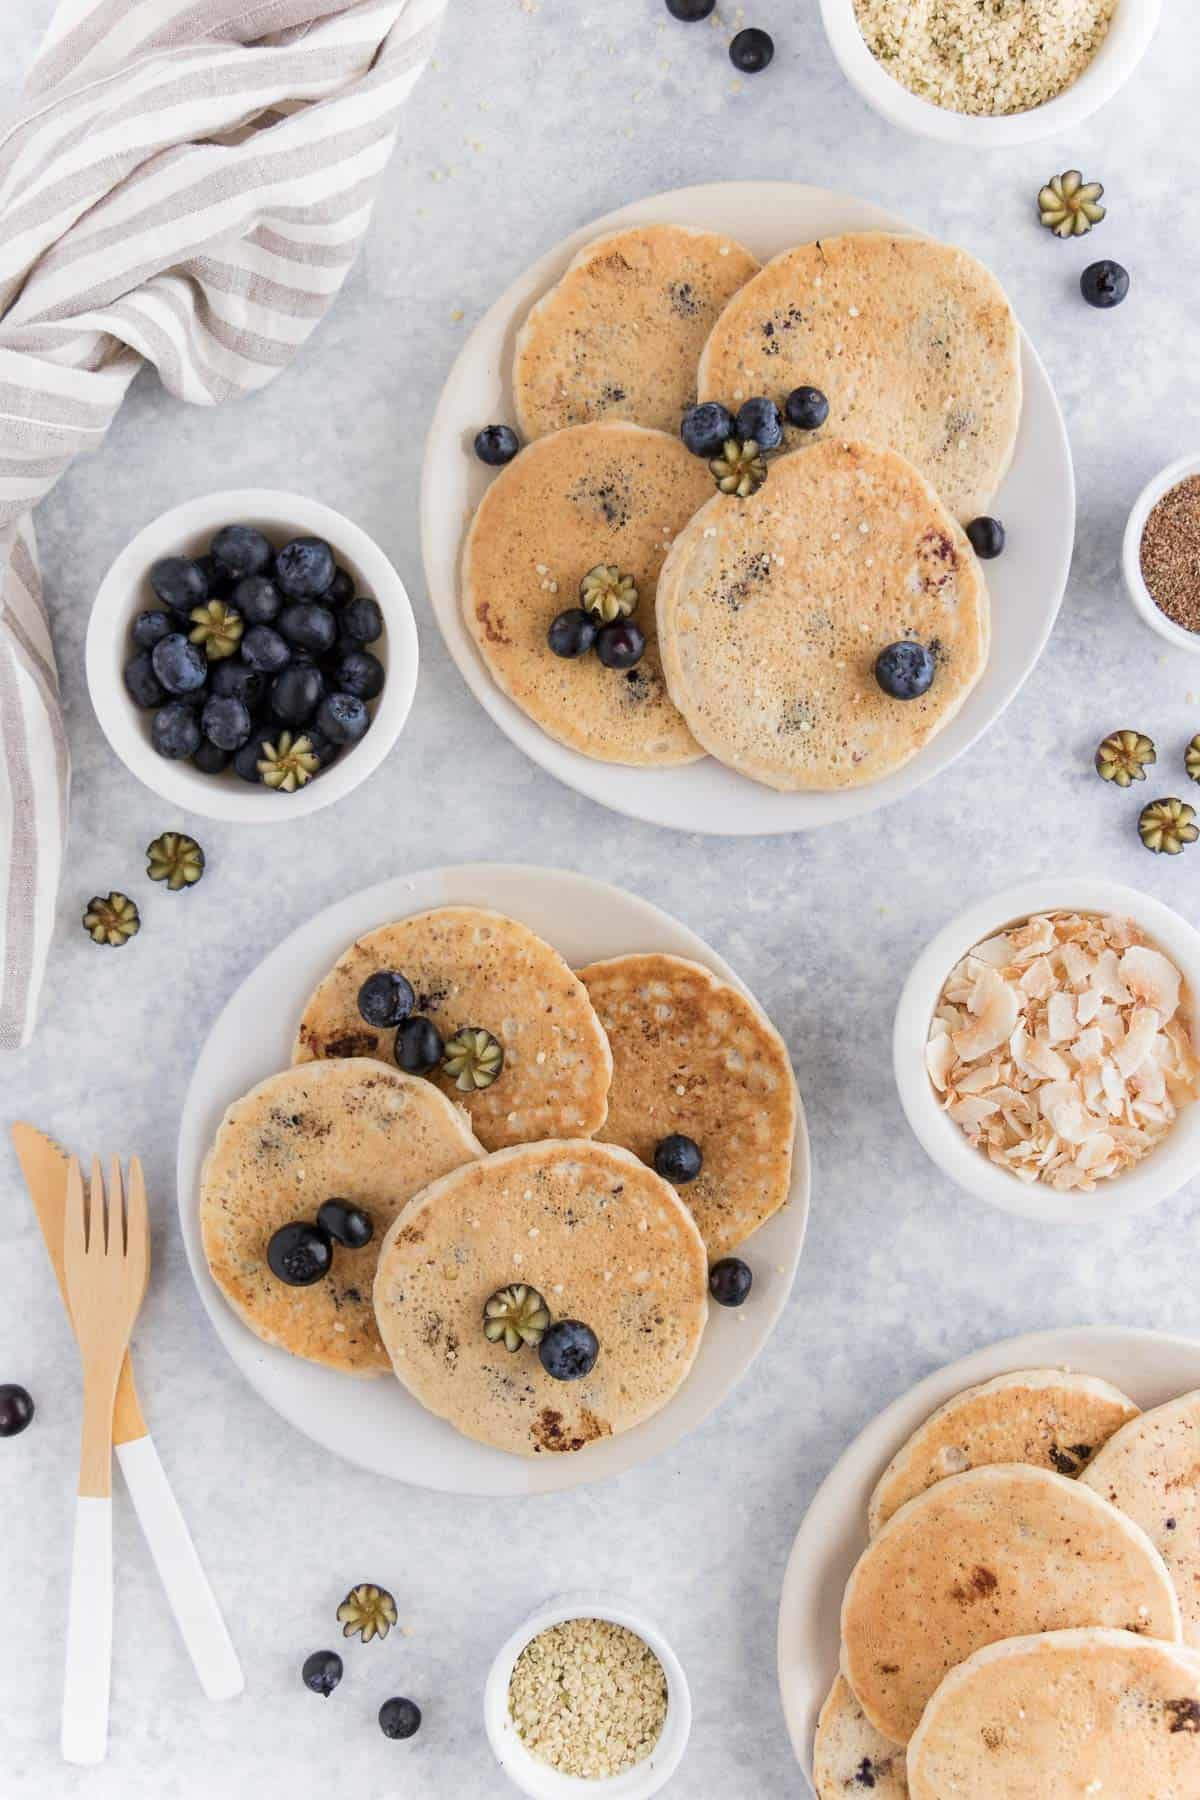 pancakes laying on two plates surrounded by blueberries, hemp seeds, and coconut flakes